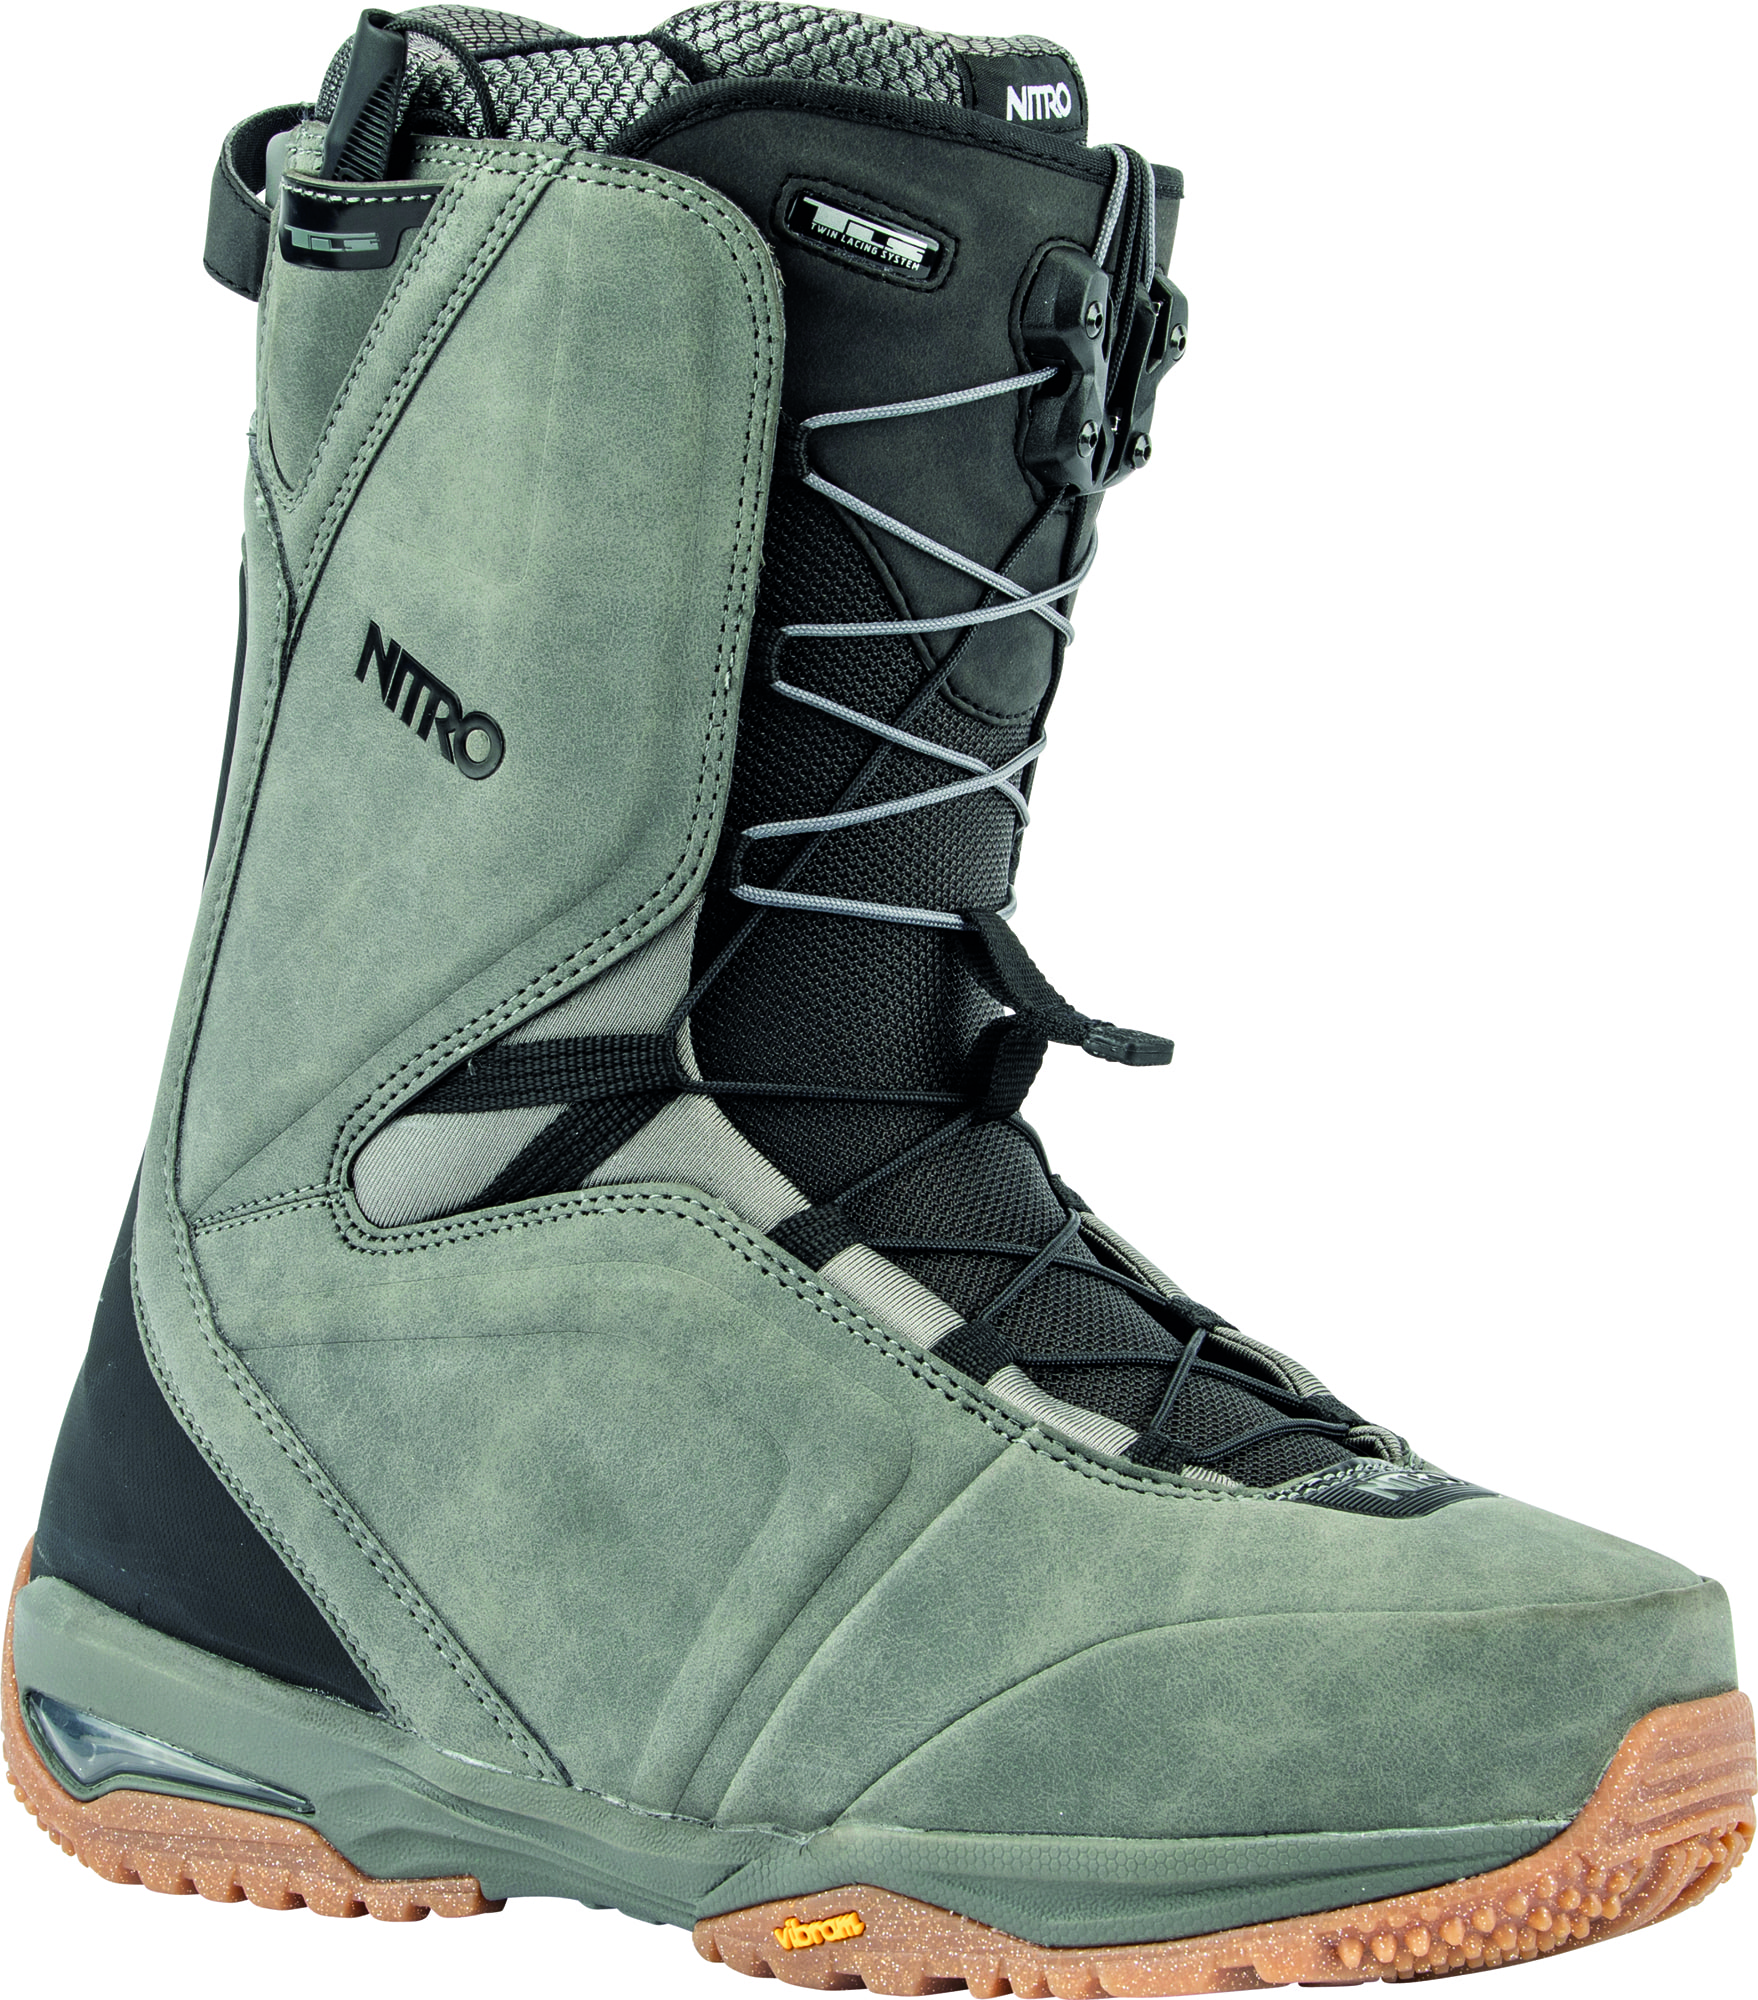 Team TLS Charcoal Snowboardboot Nitro 2020